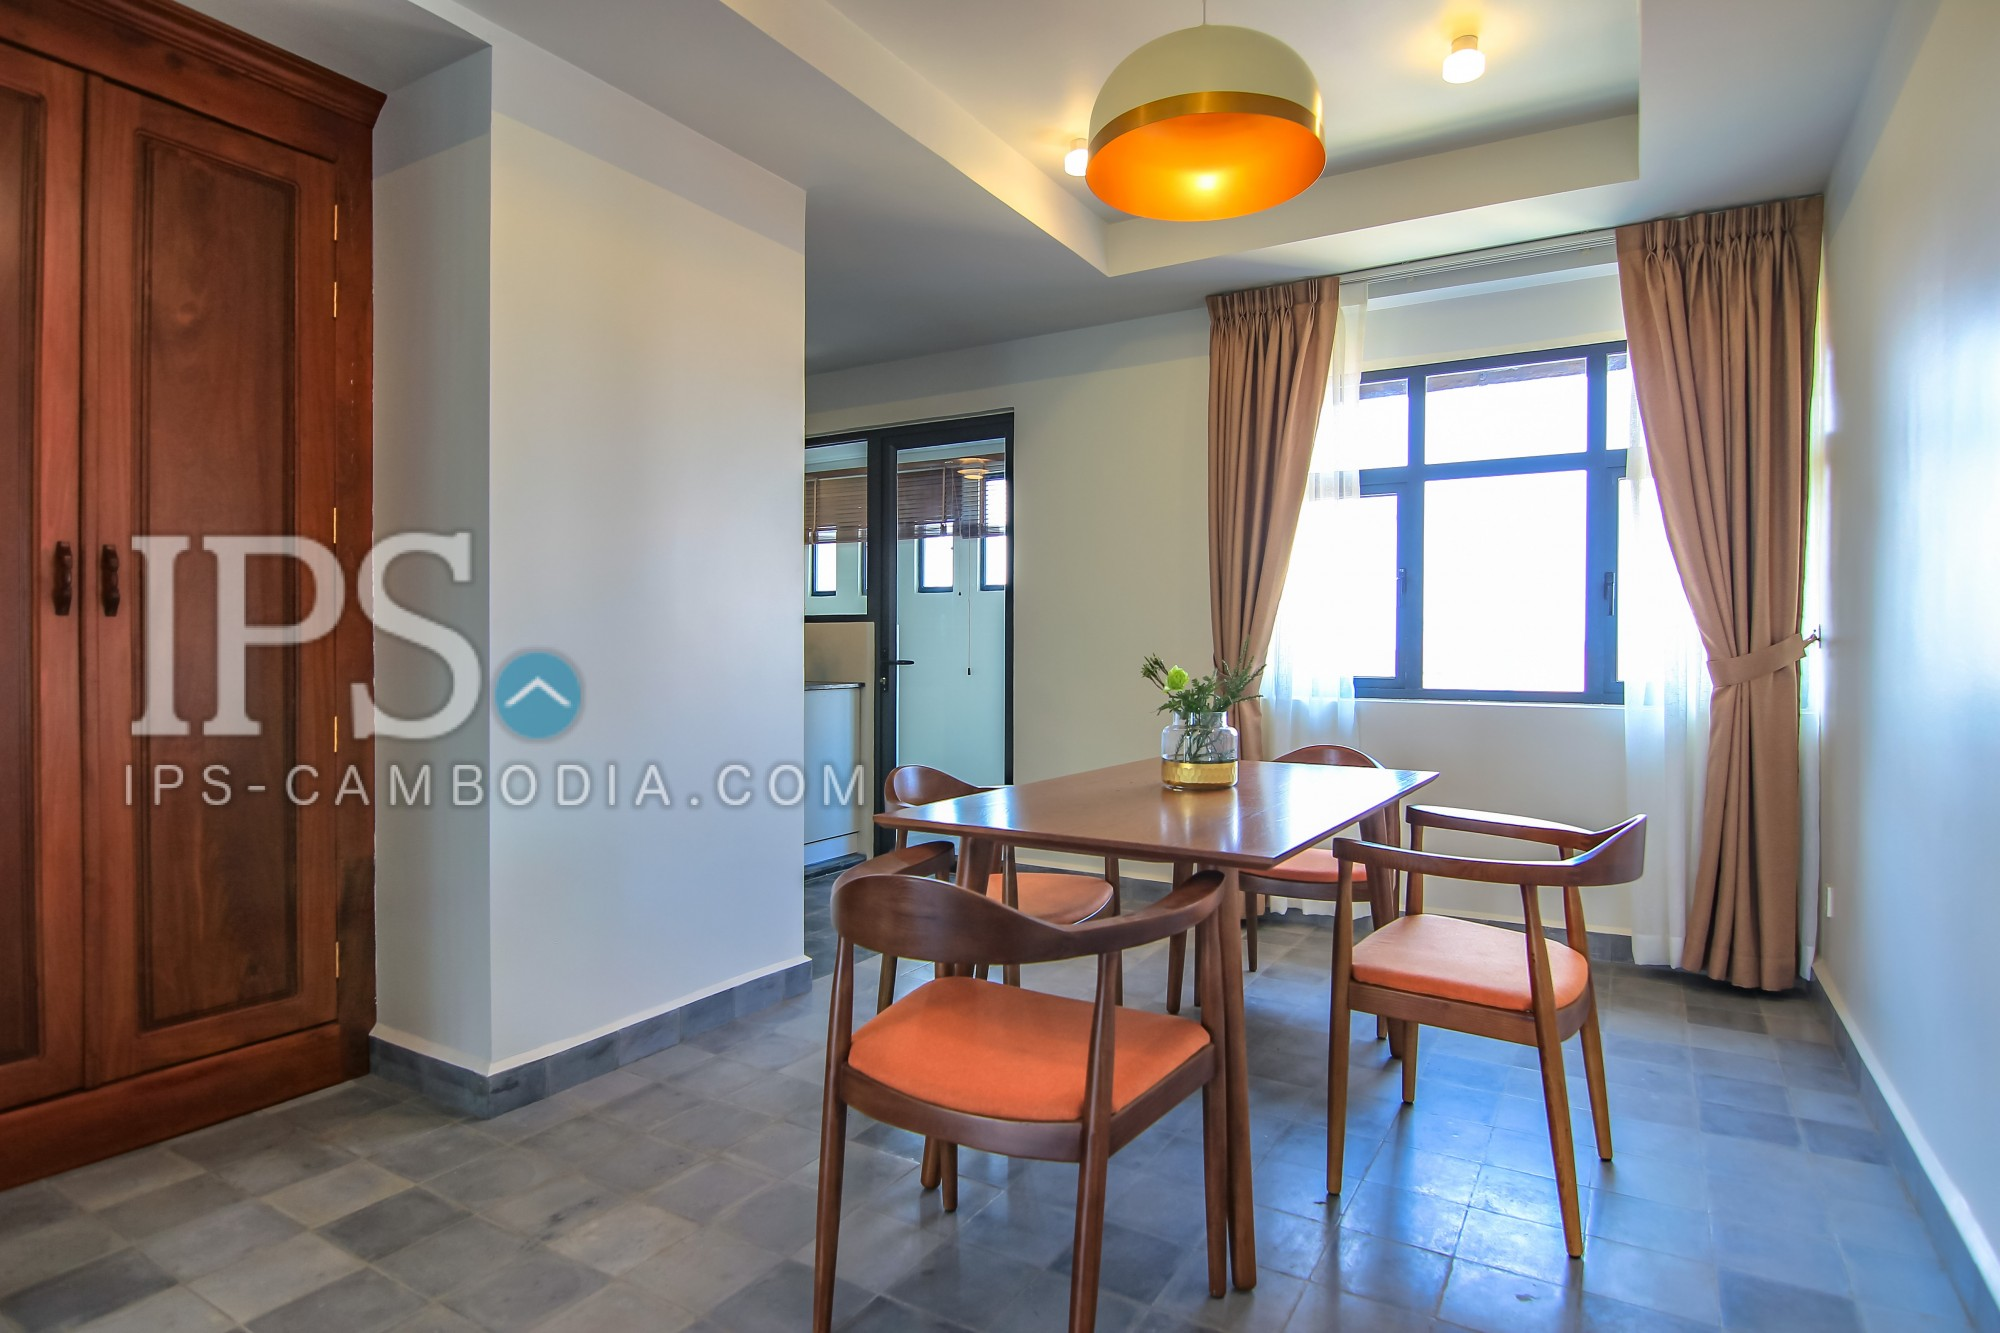 1 Bedroom Penthouse for Rent - Wat Phnom